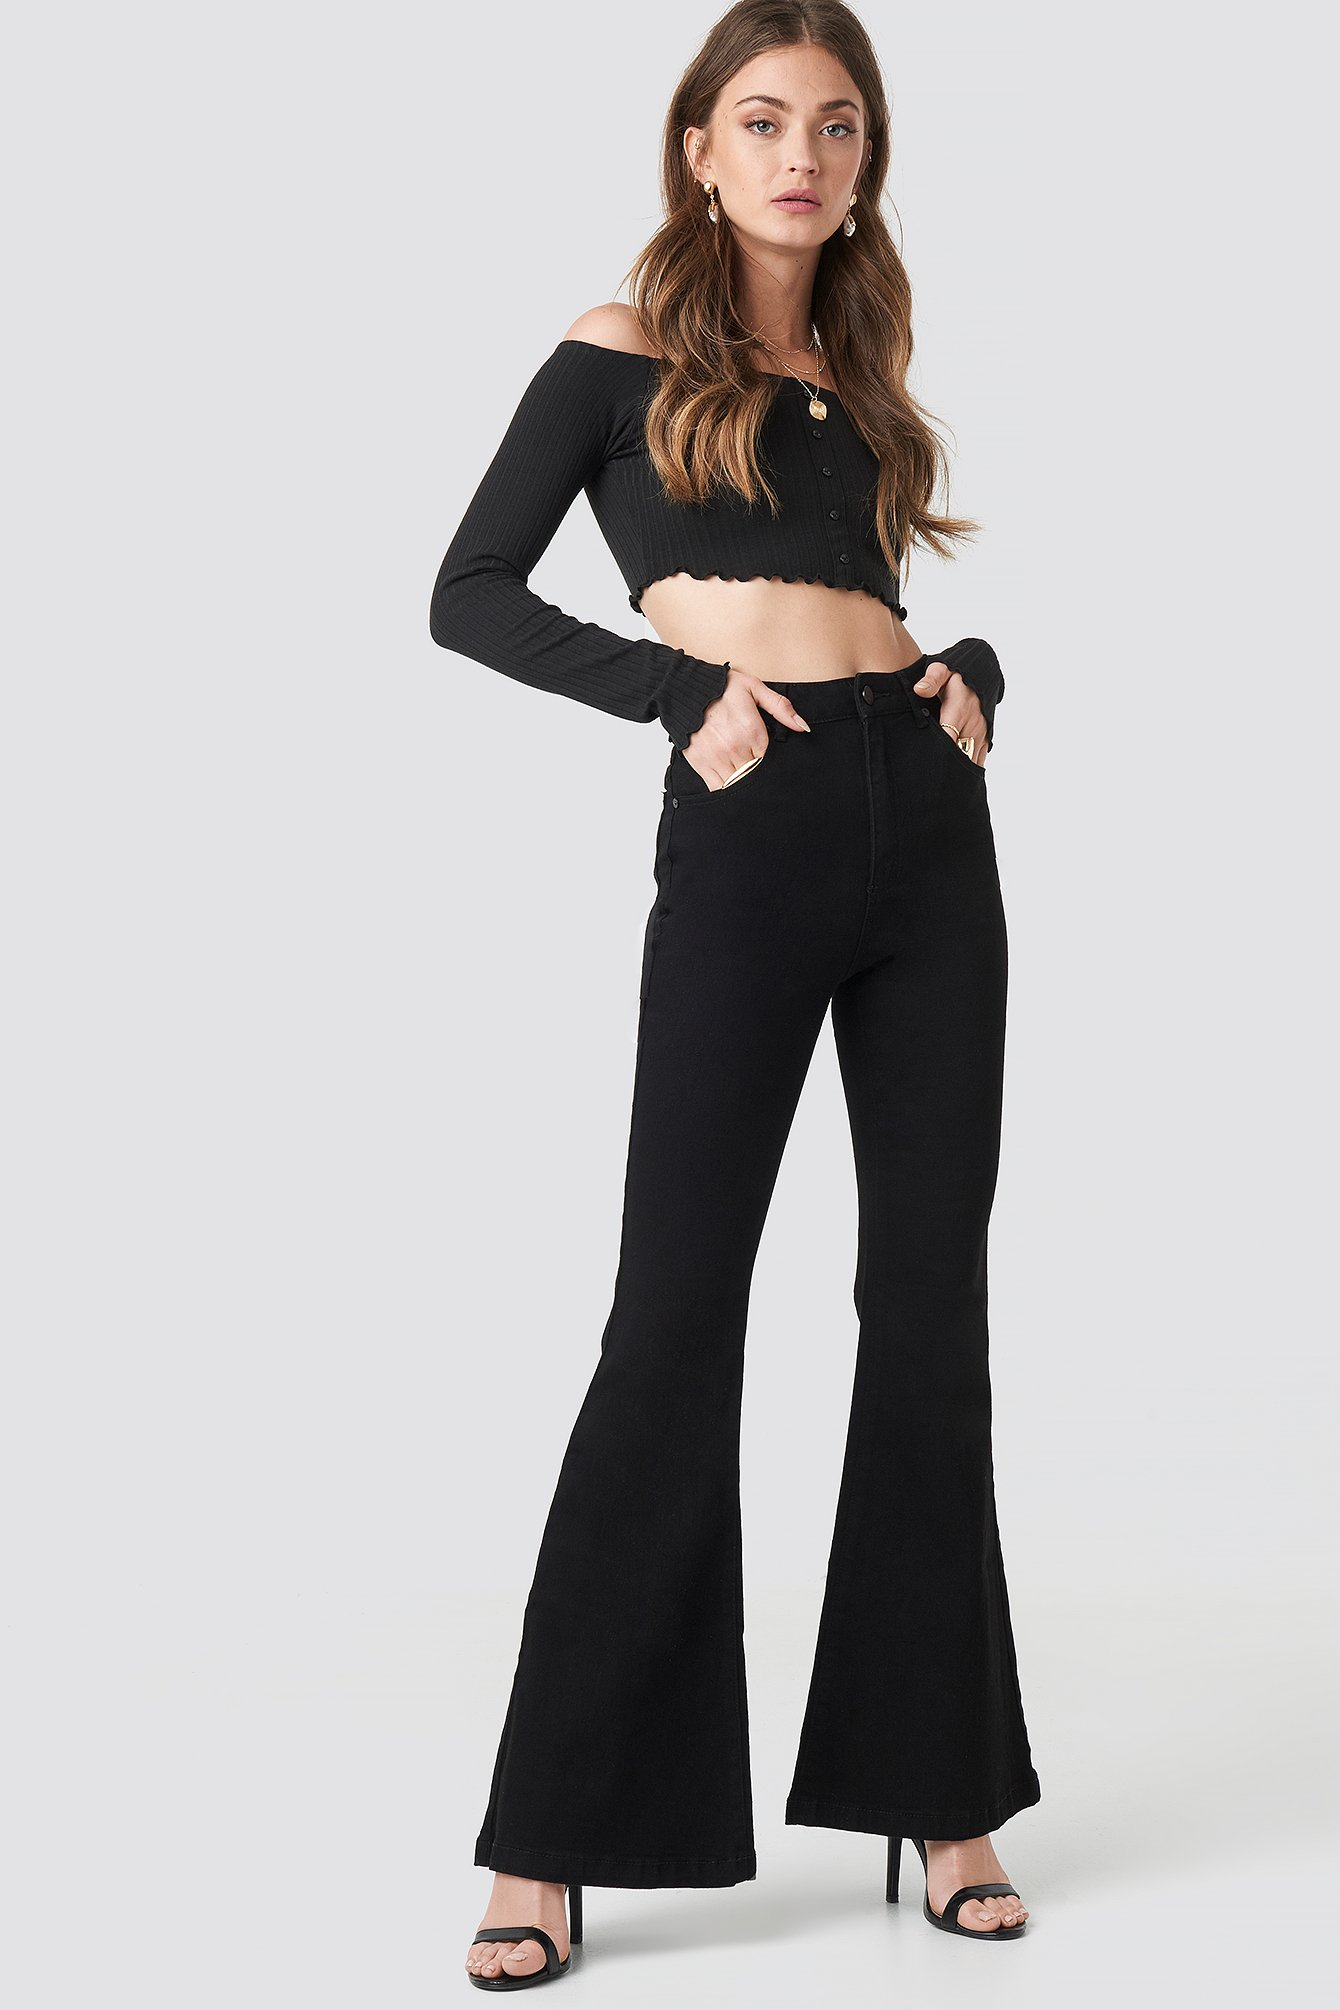 abrand -  A Double Oh Flare Jeans - Black